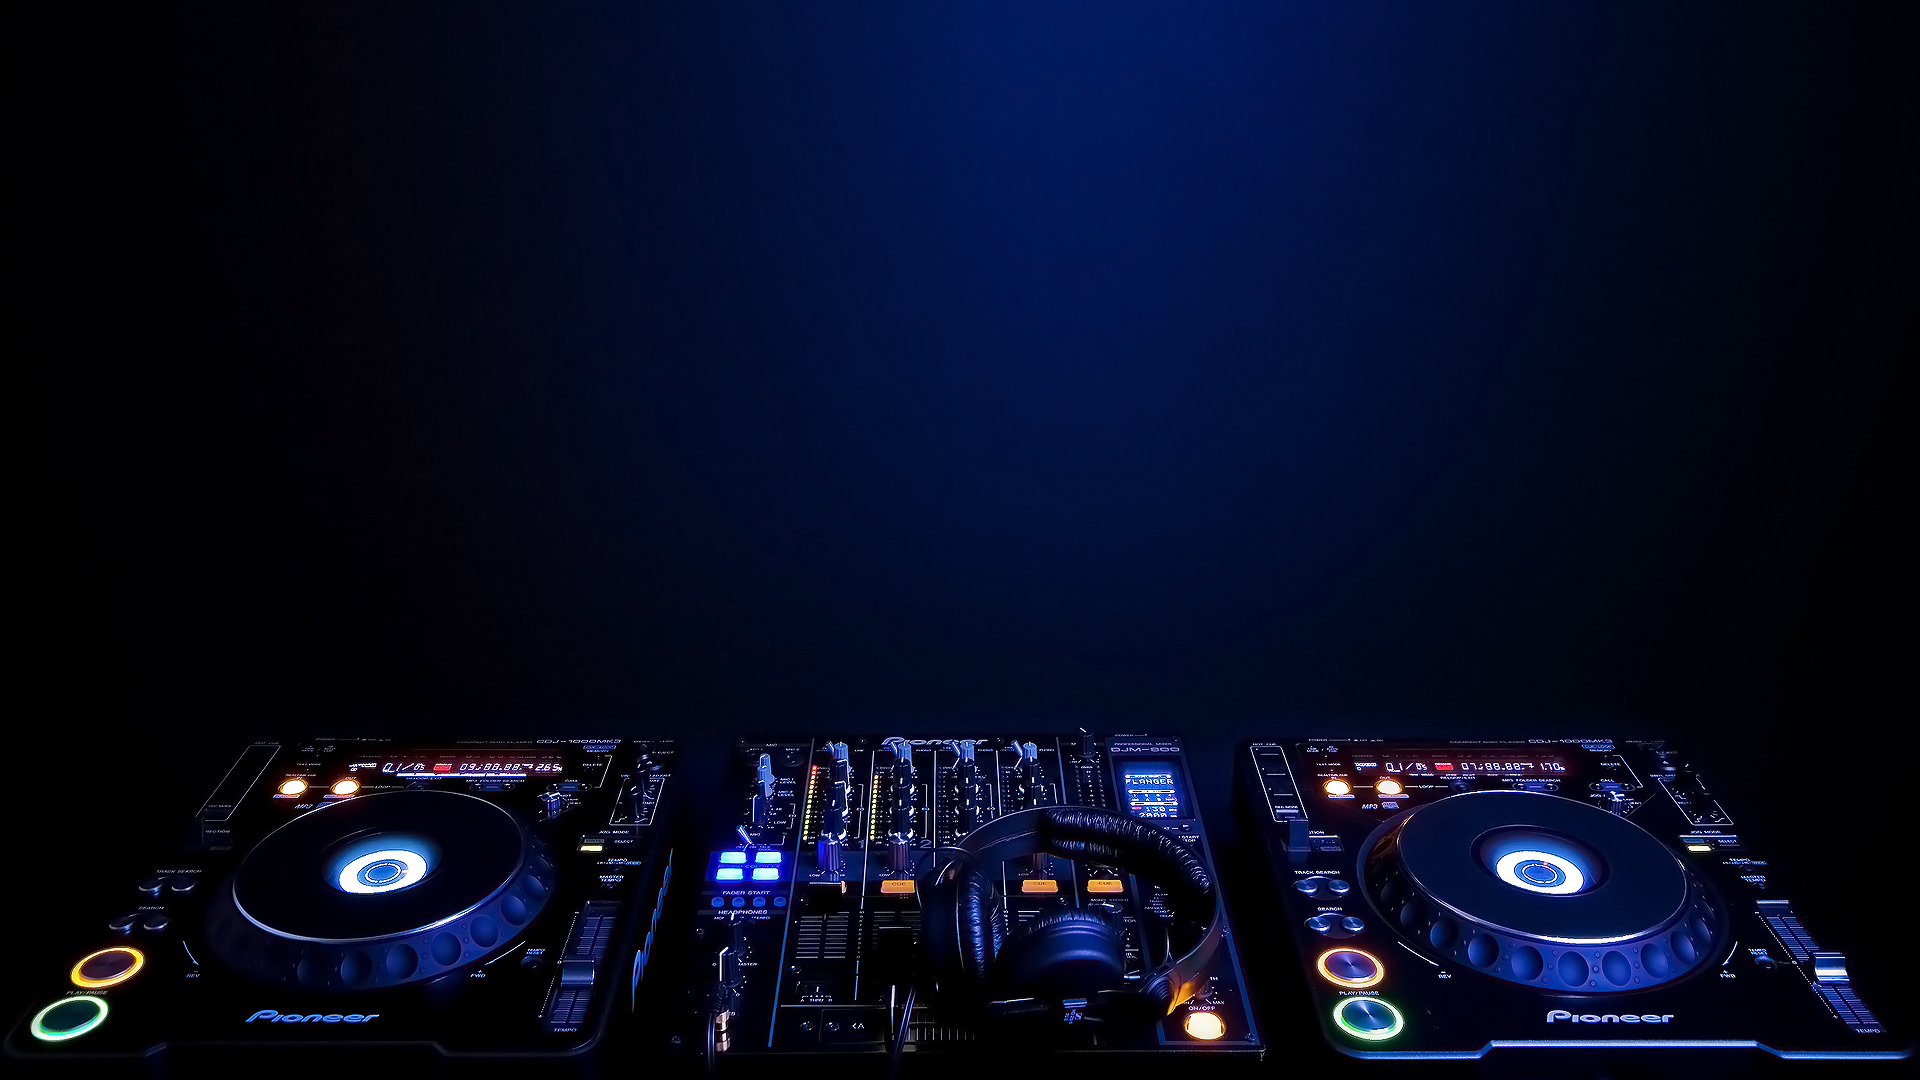 Dj Wallpapers Hd 2016: Background Image